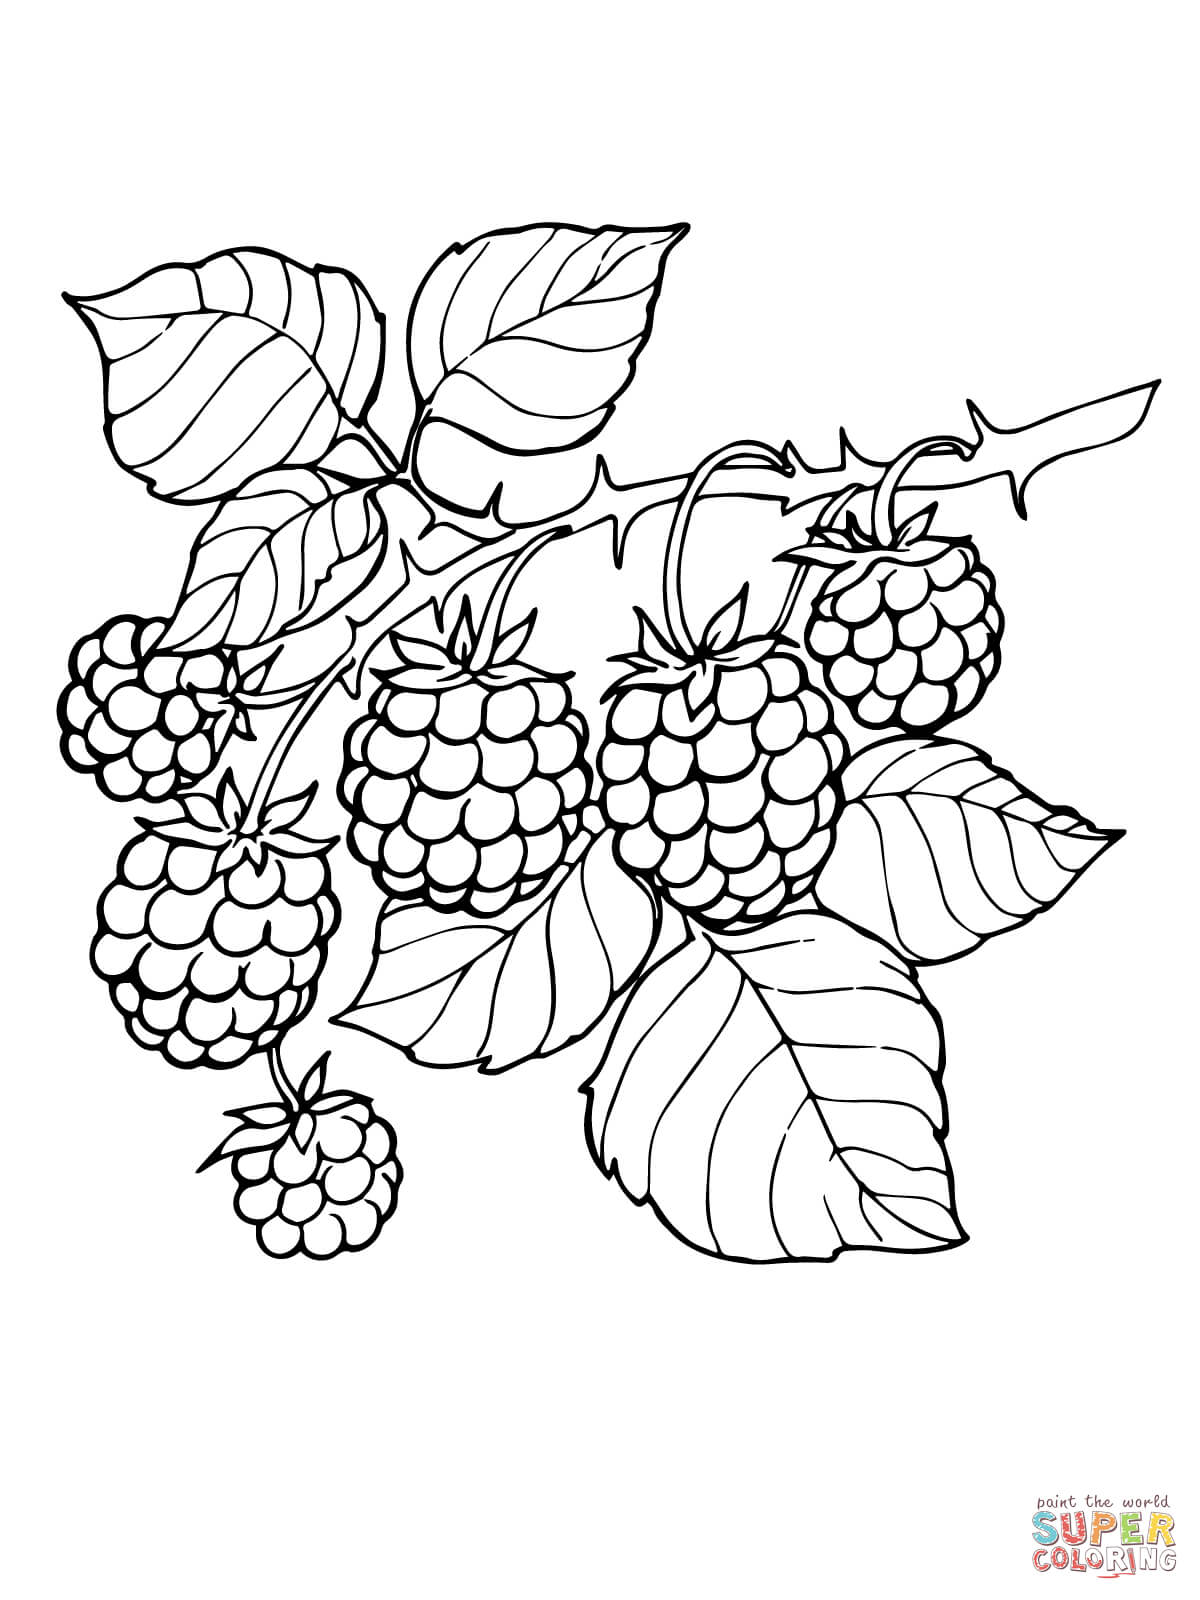 vector black and white download Branch page free printable. Blackberry drawing coloring